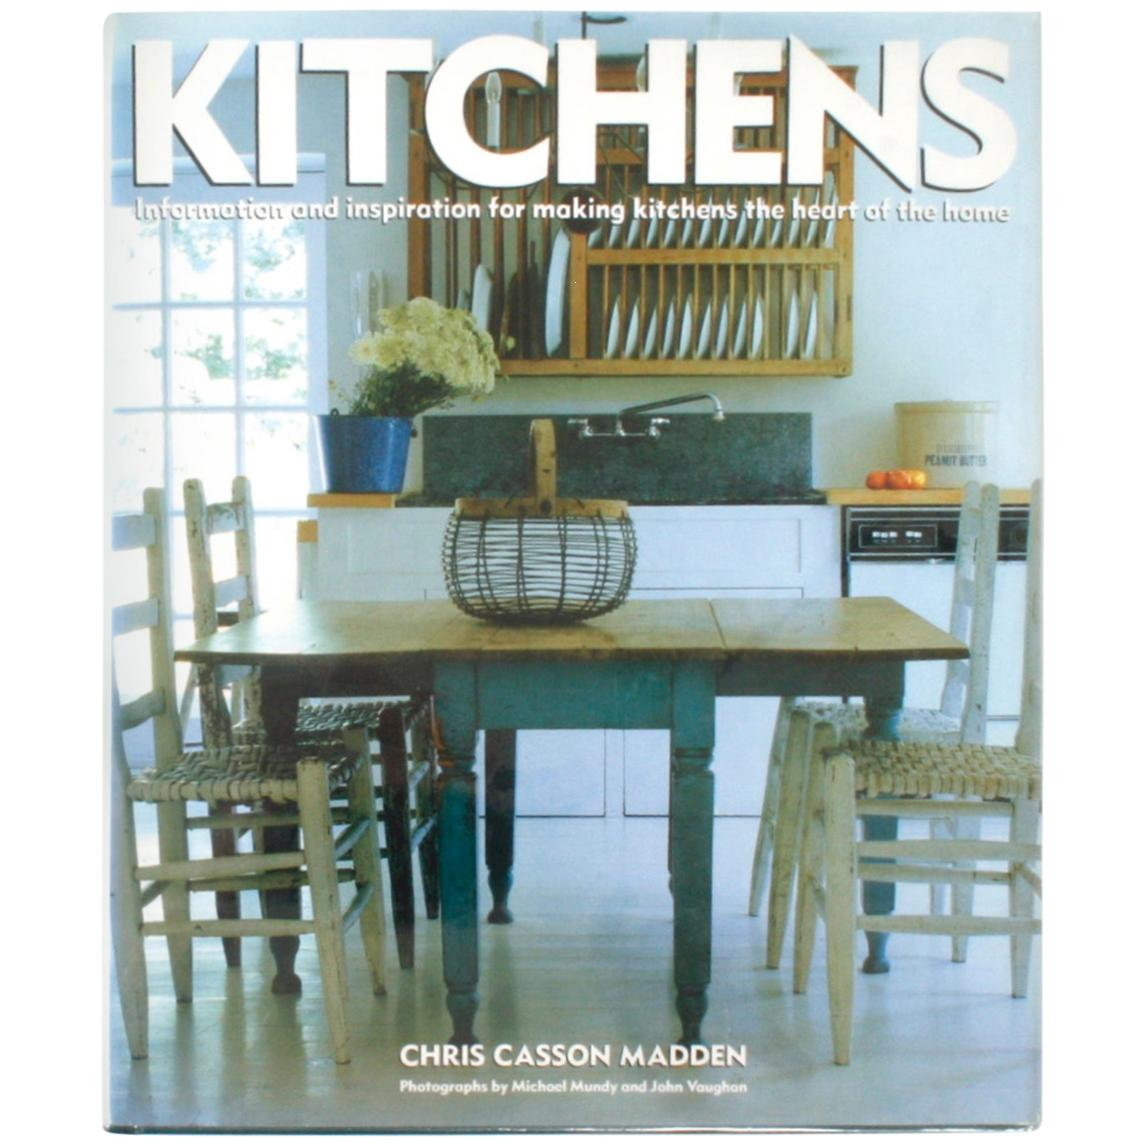 Kitchens by Chris Casson Madden